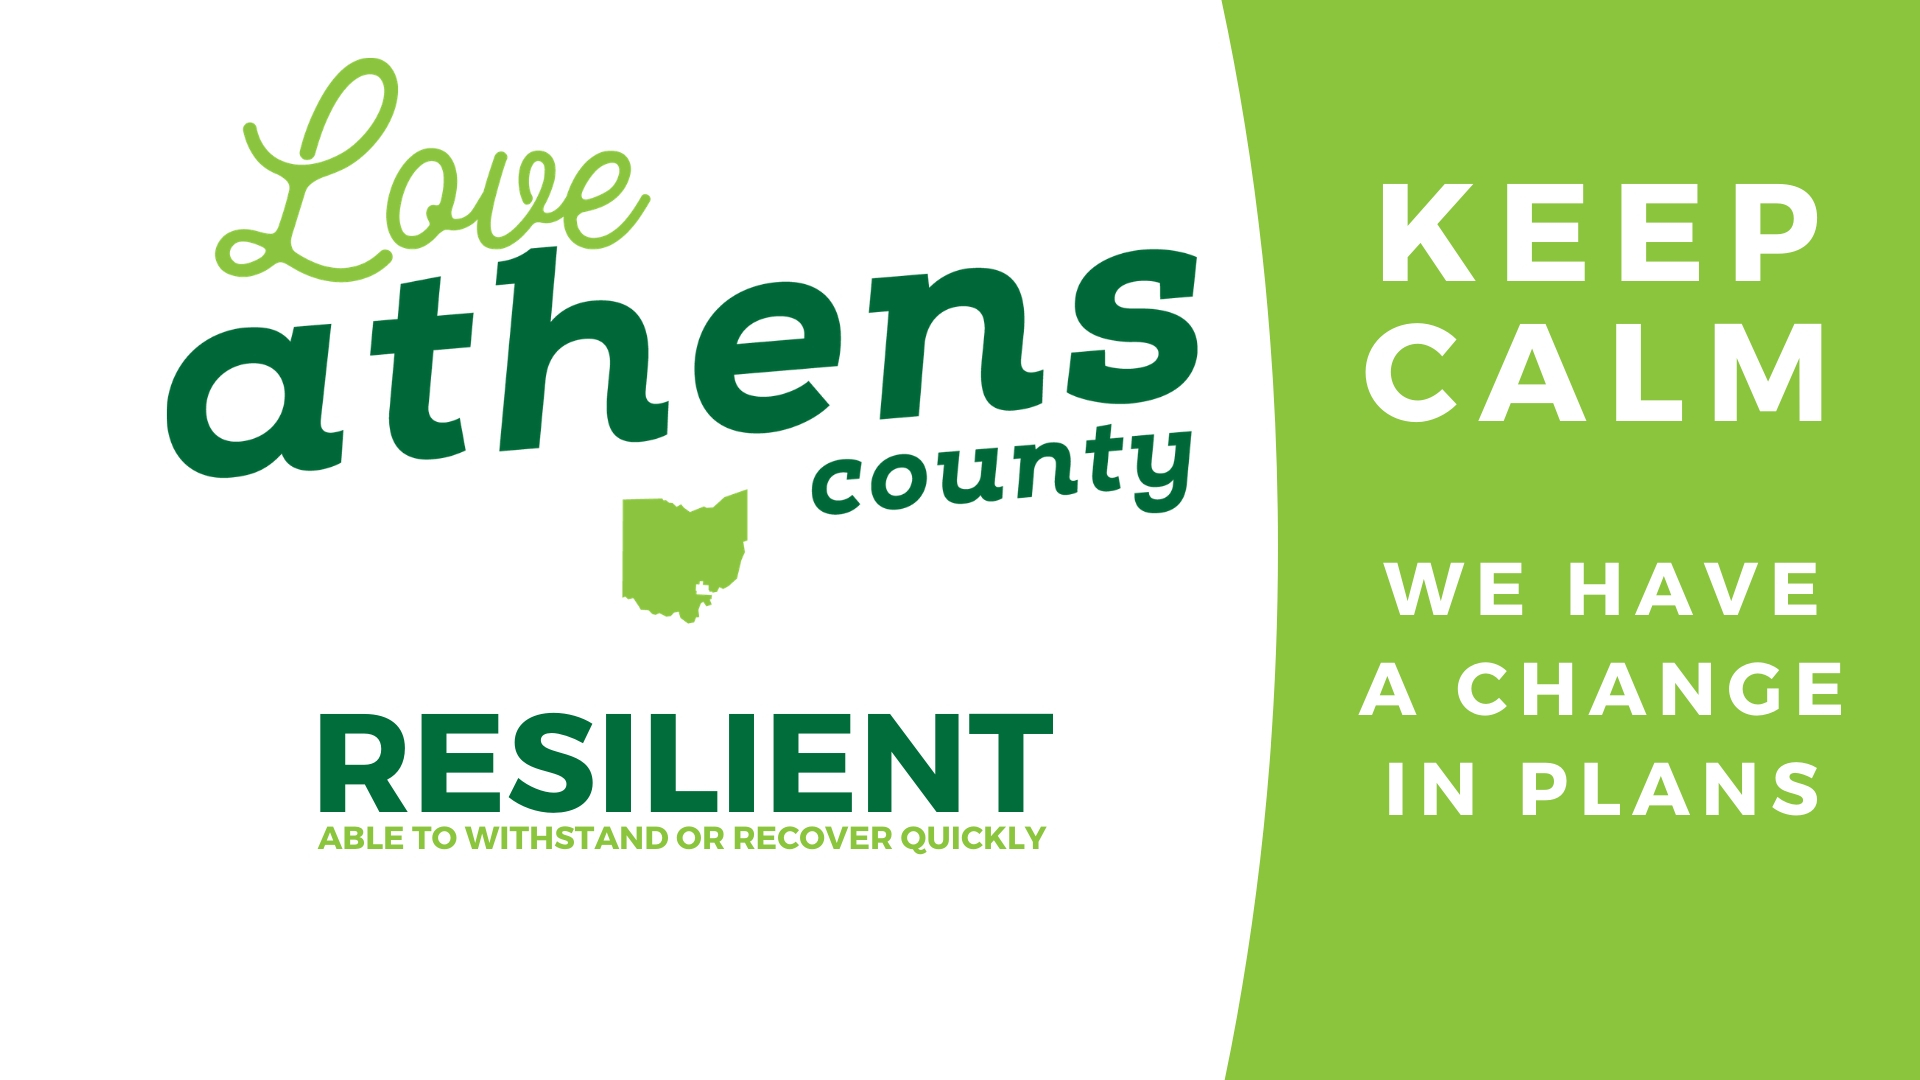 Love Athens County. Resilient: able to withstand or recover quickly. Keep calm. We have a change in plans.